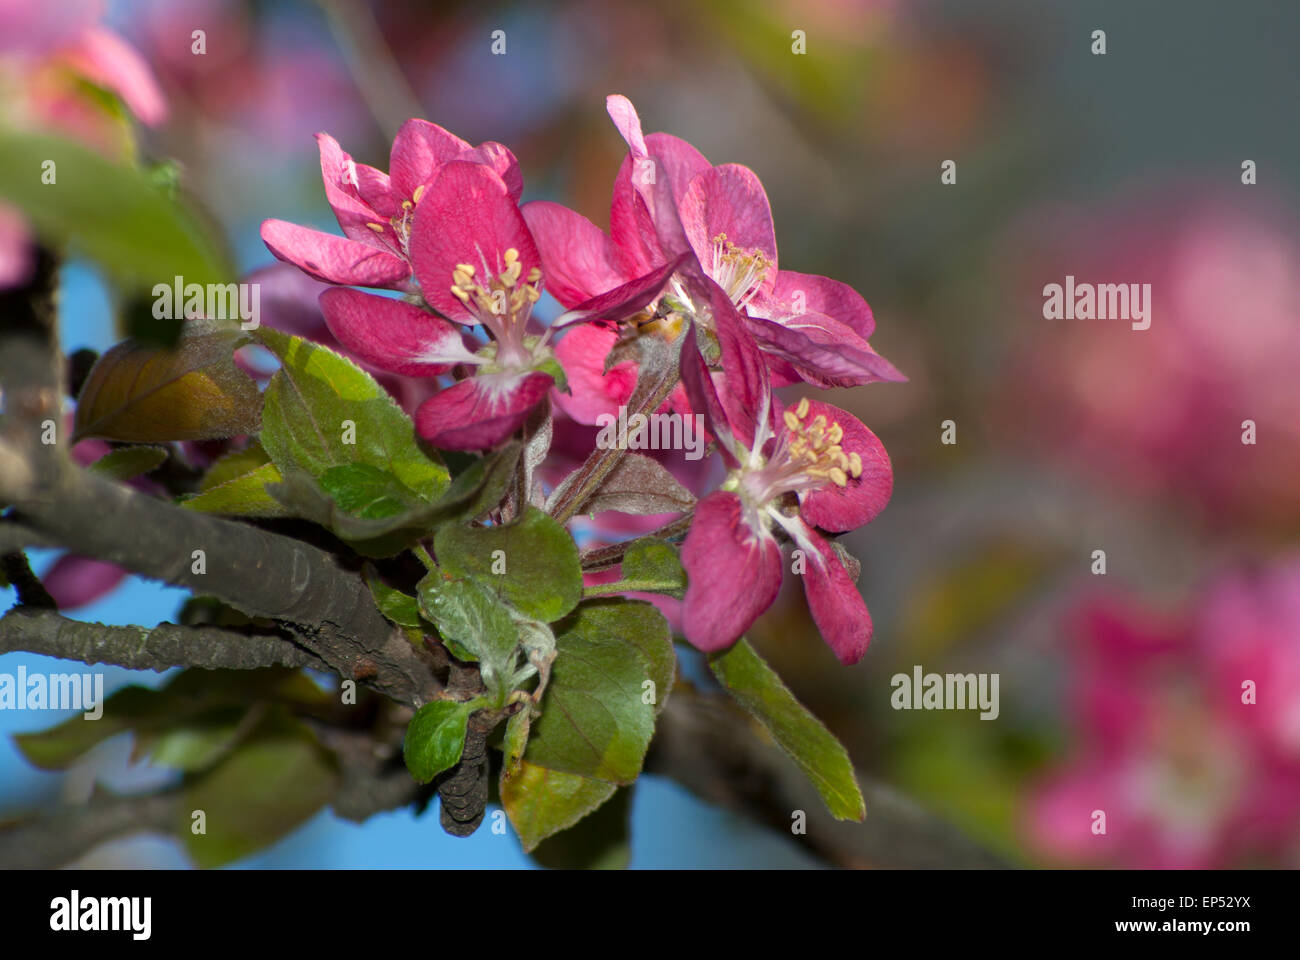 The flowers are dark pink on the branch of an apple tree stock photo the flowers are dark pink on the branch of an apple tree mightylinksfo